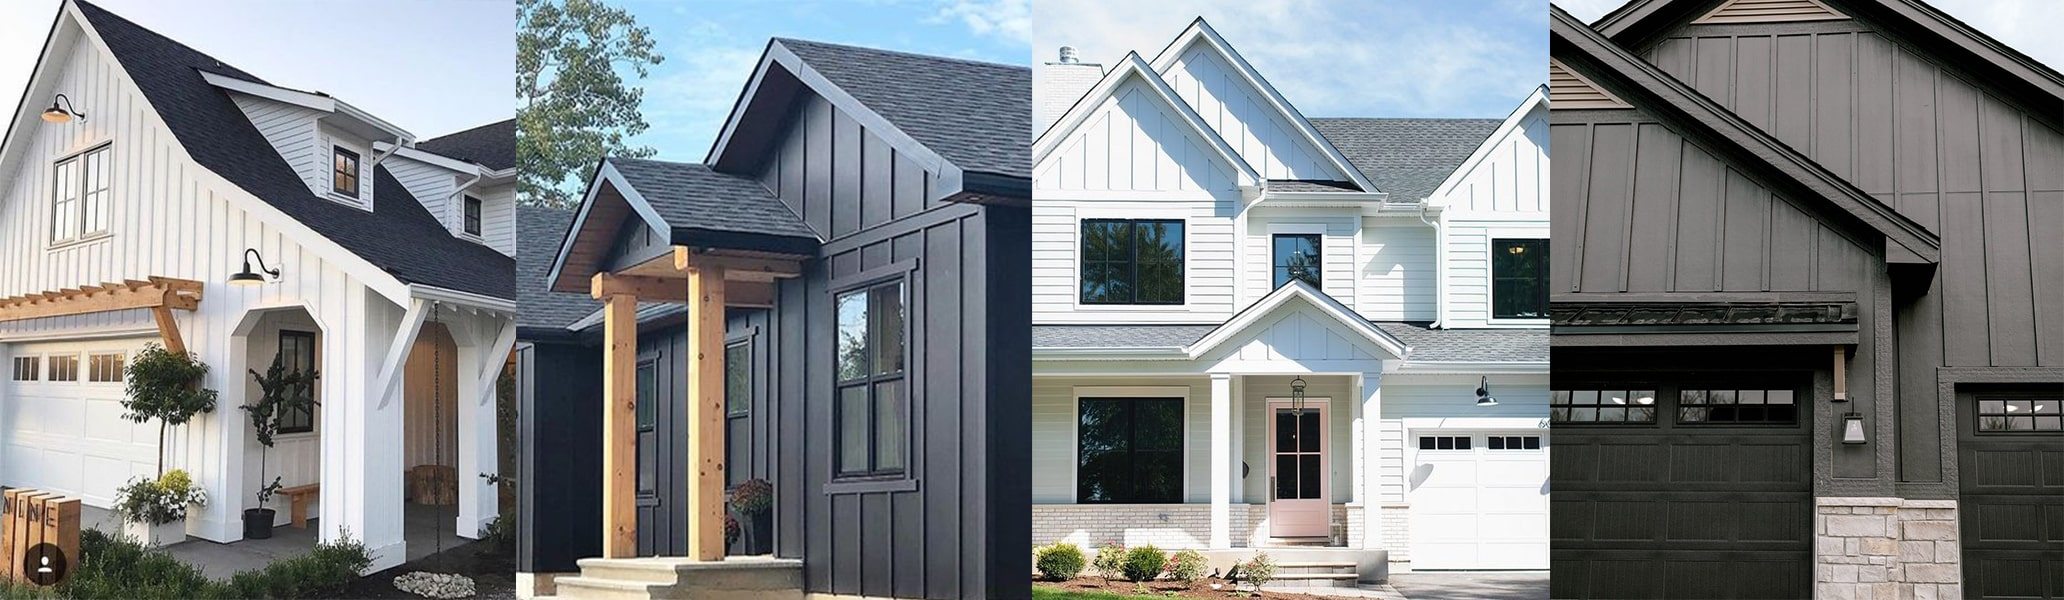 Homes with vertical siding in white and dark grey